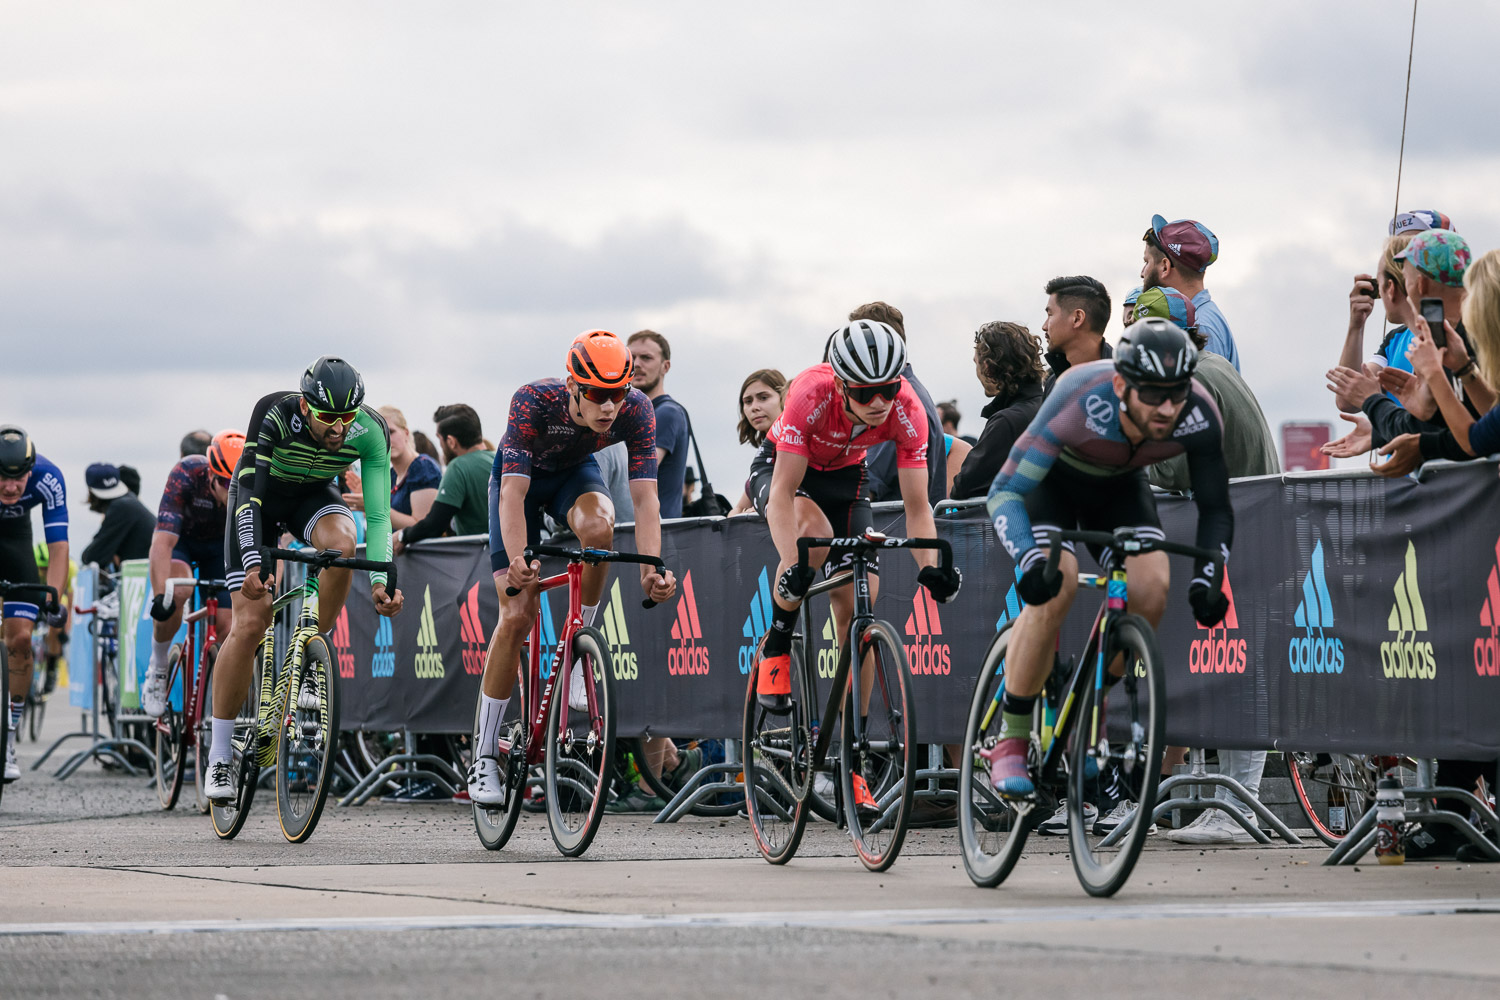 8bar-crit-fixed-gear-bike-race-stefanhaehnel-men-fxd-final-43